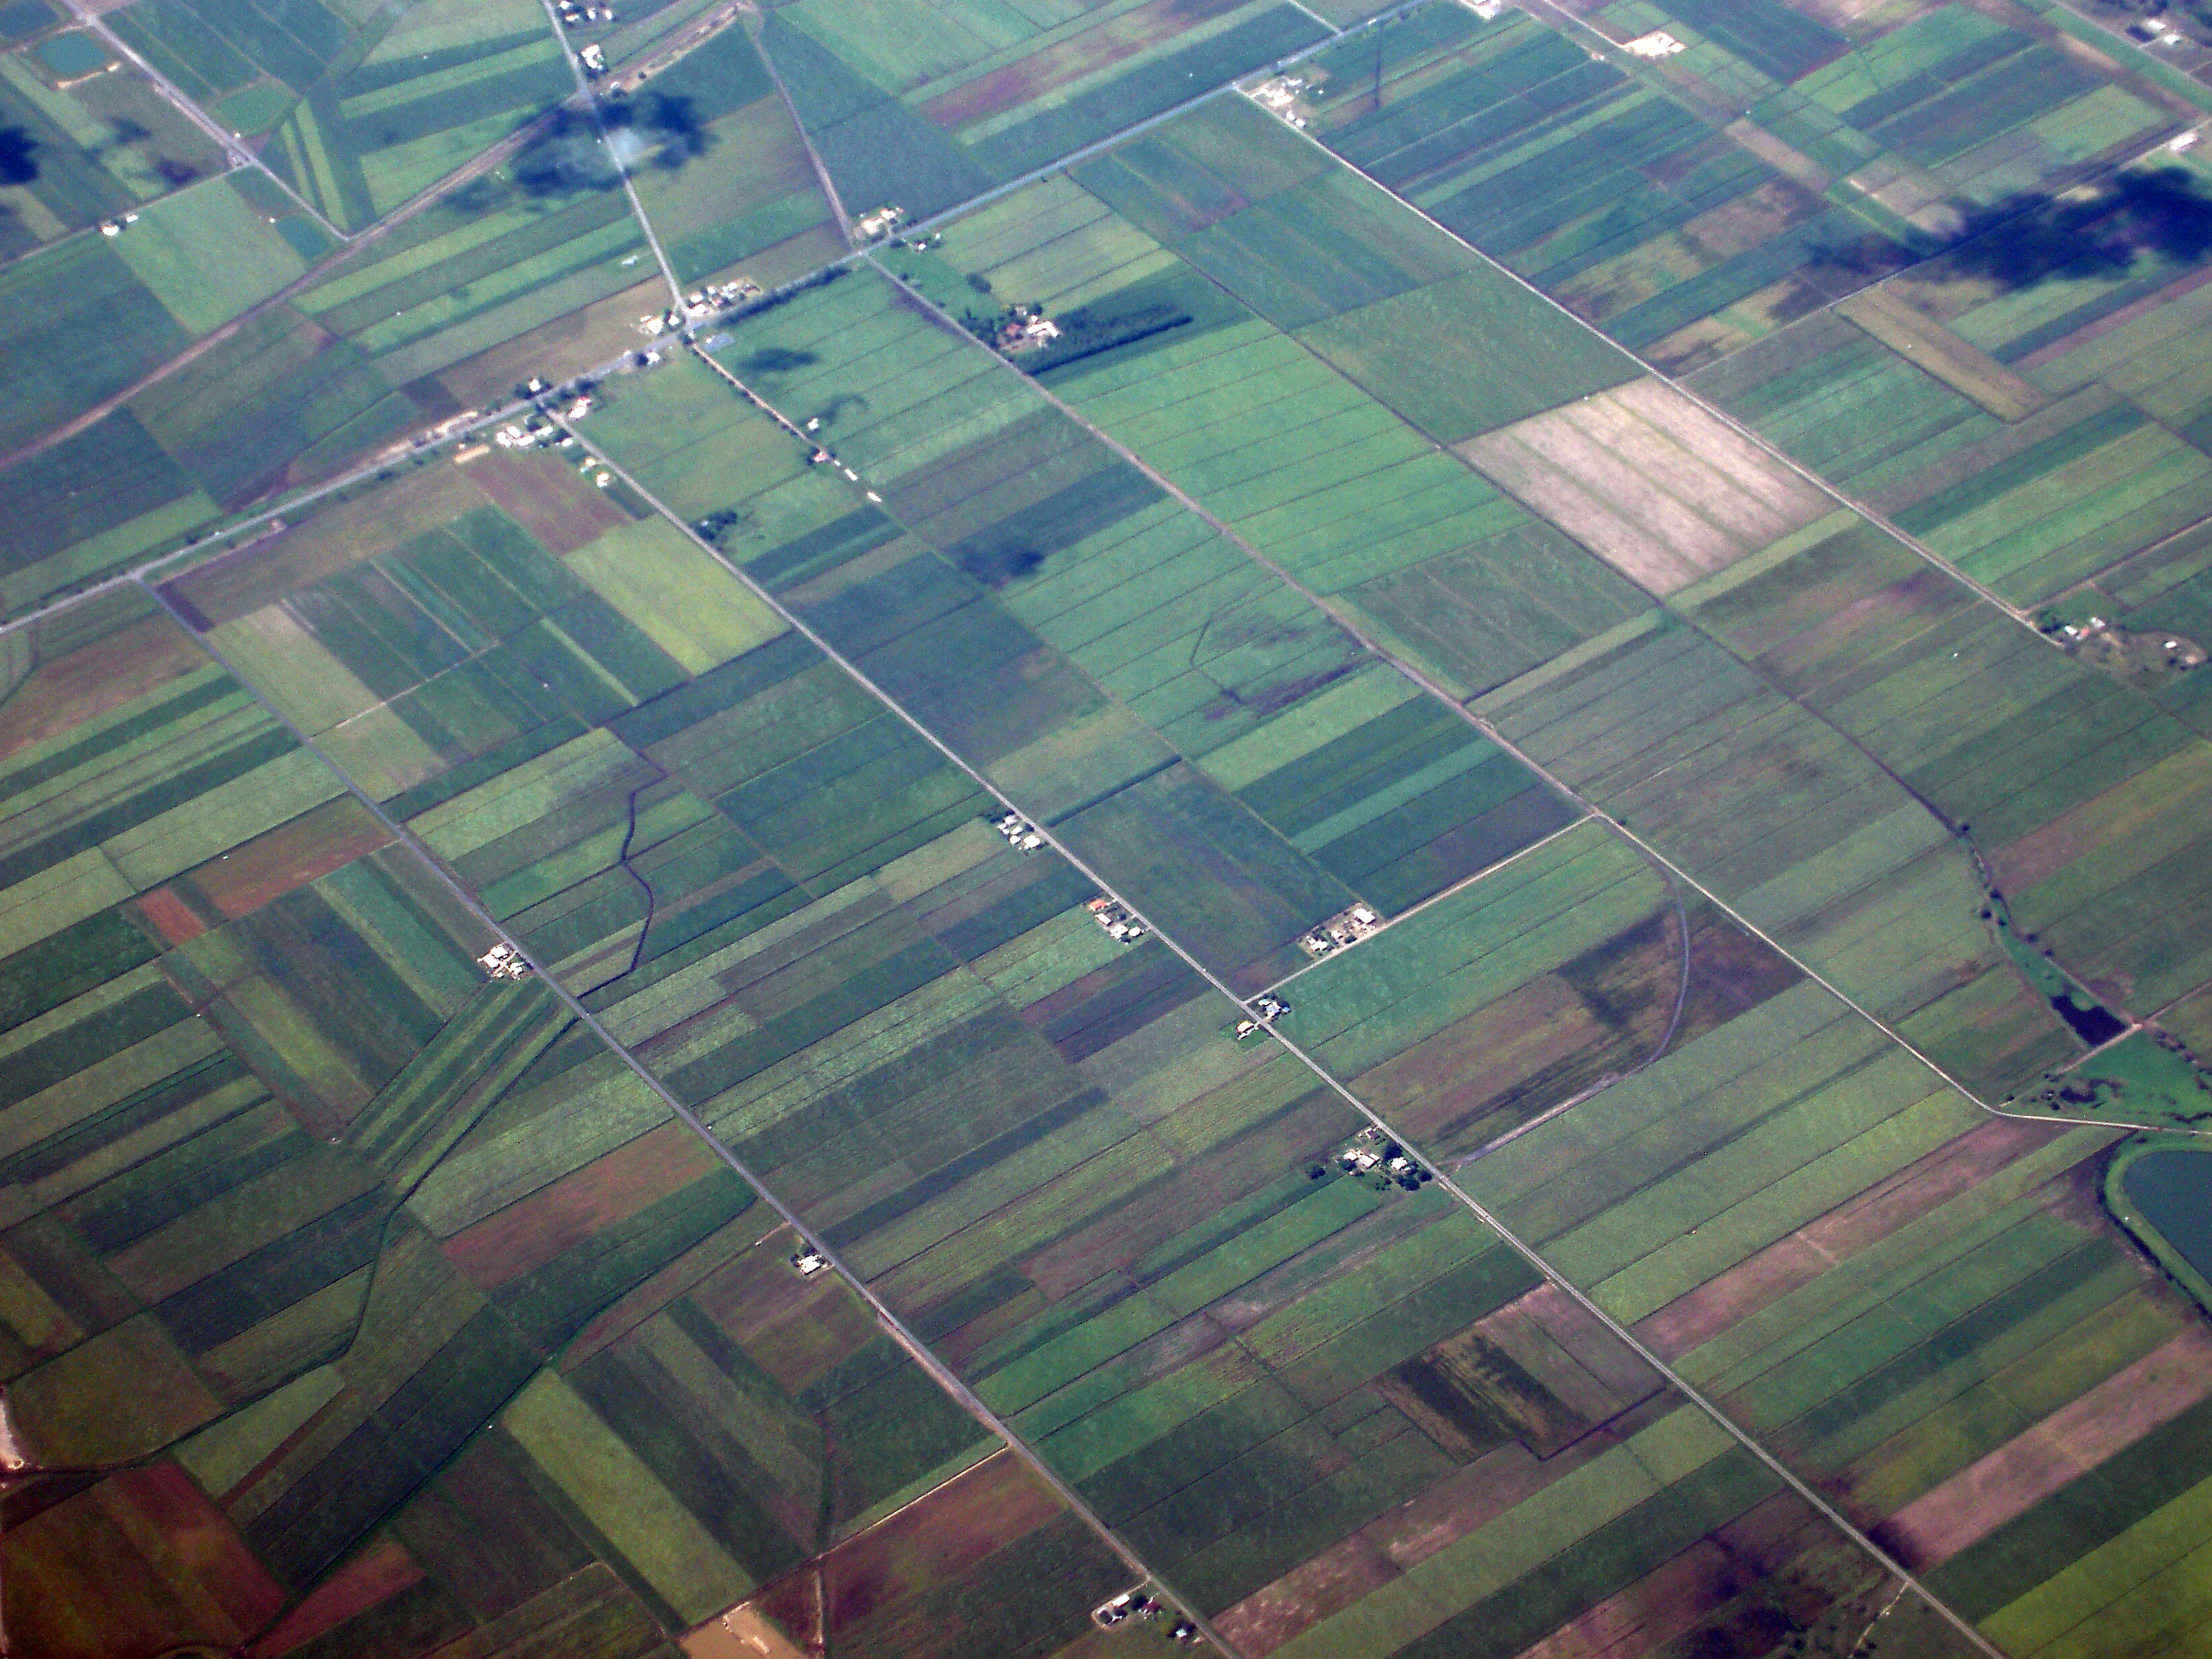 Free image of Aerial view of cultivated farmland